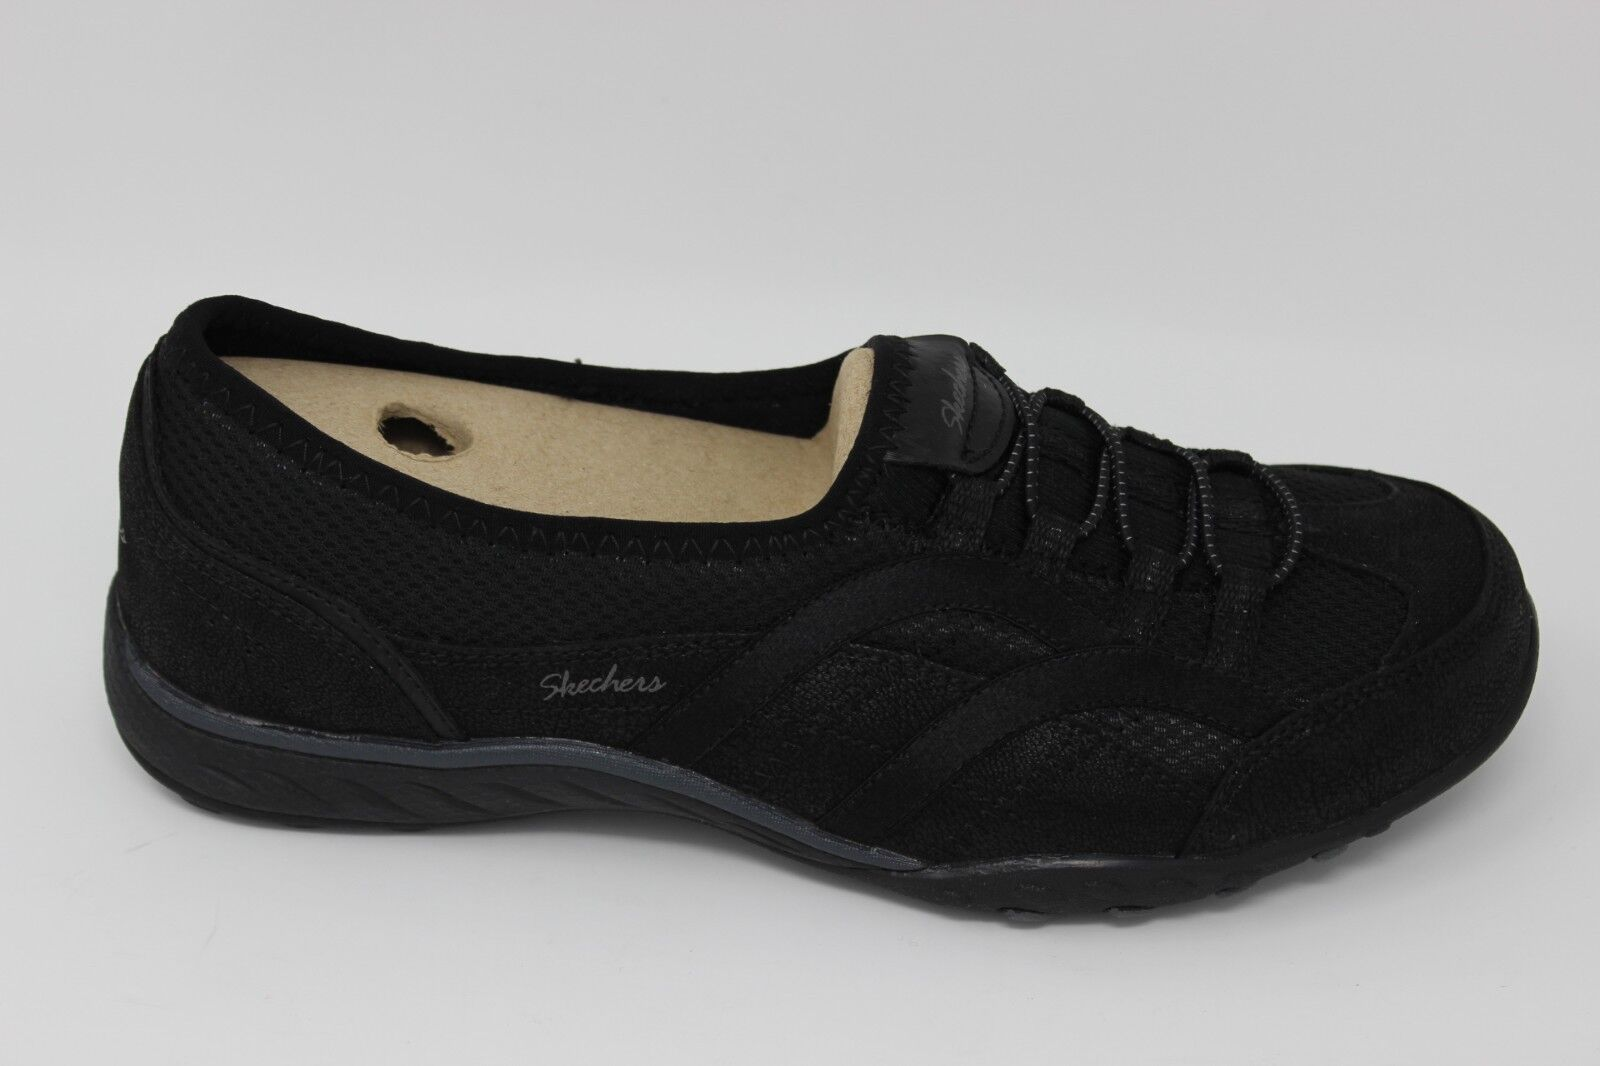 Skechers Women's Breathe-Easy-WELL VERSED 23203W Wide Black Brand New